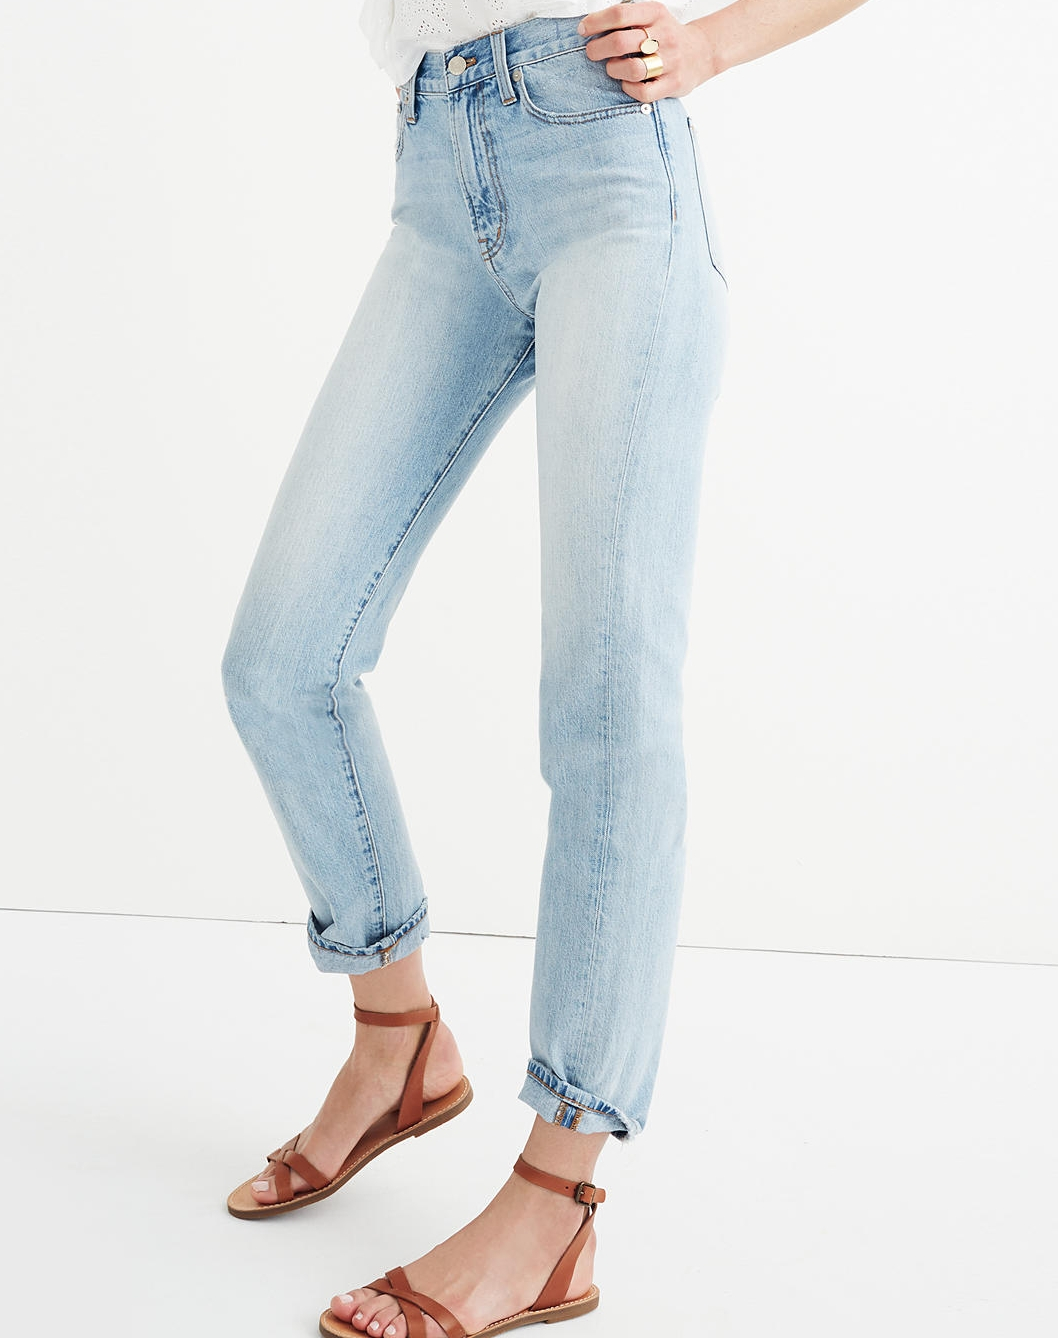 The Perfect Summer Jean High Rise - $115 Madwell (100% Cotton)